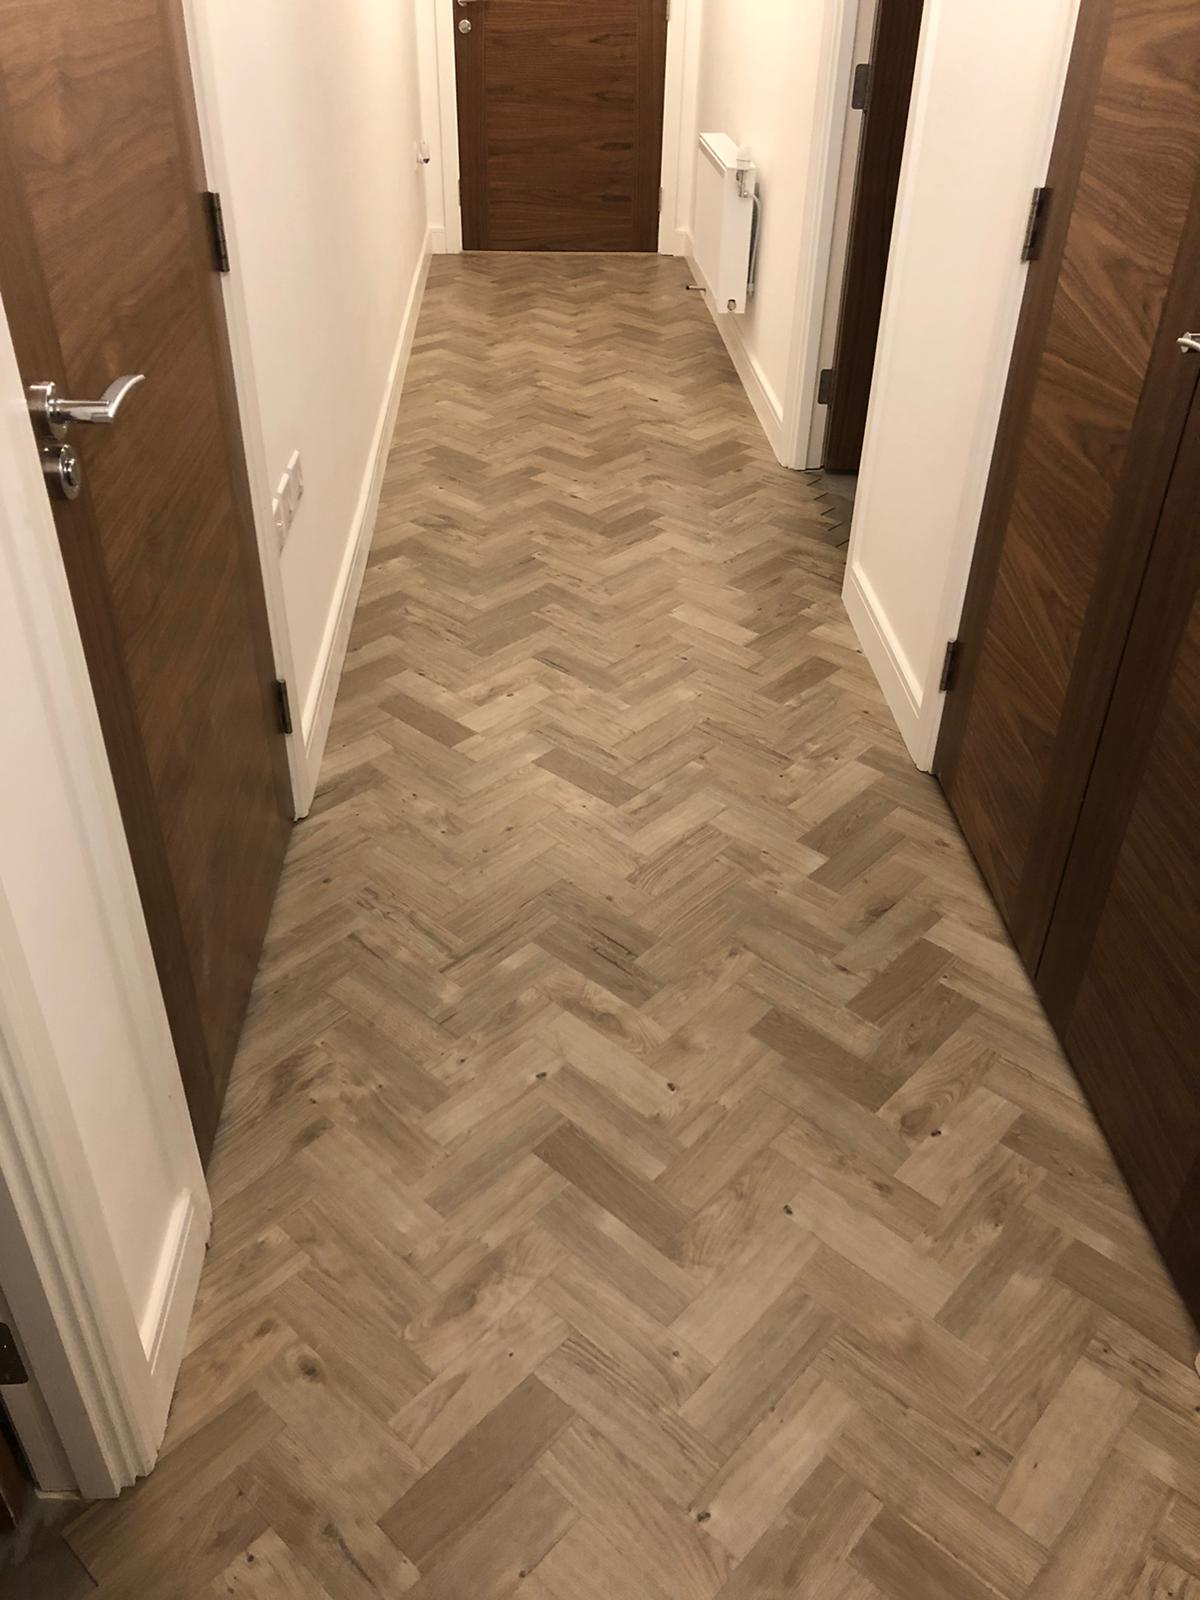 To supply & install Amtico Spacia Sun Bleached Oak luxury vinyl flooring in Kilburn 9